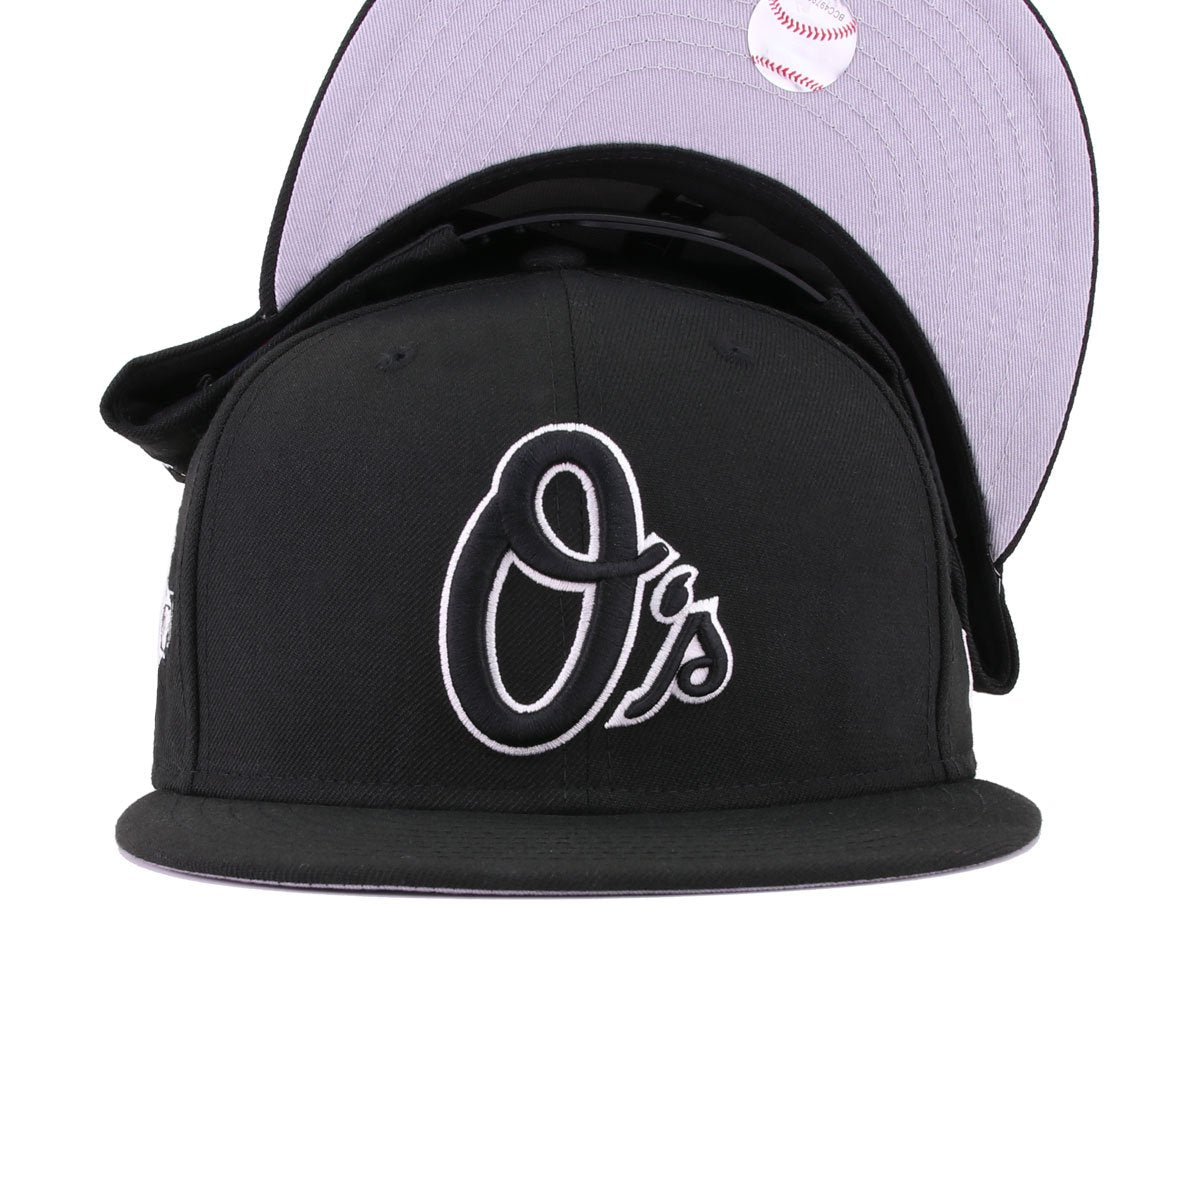 Baltimore Orioles Black White 60th Anniversary New Era 9Fifty Snapback